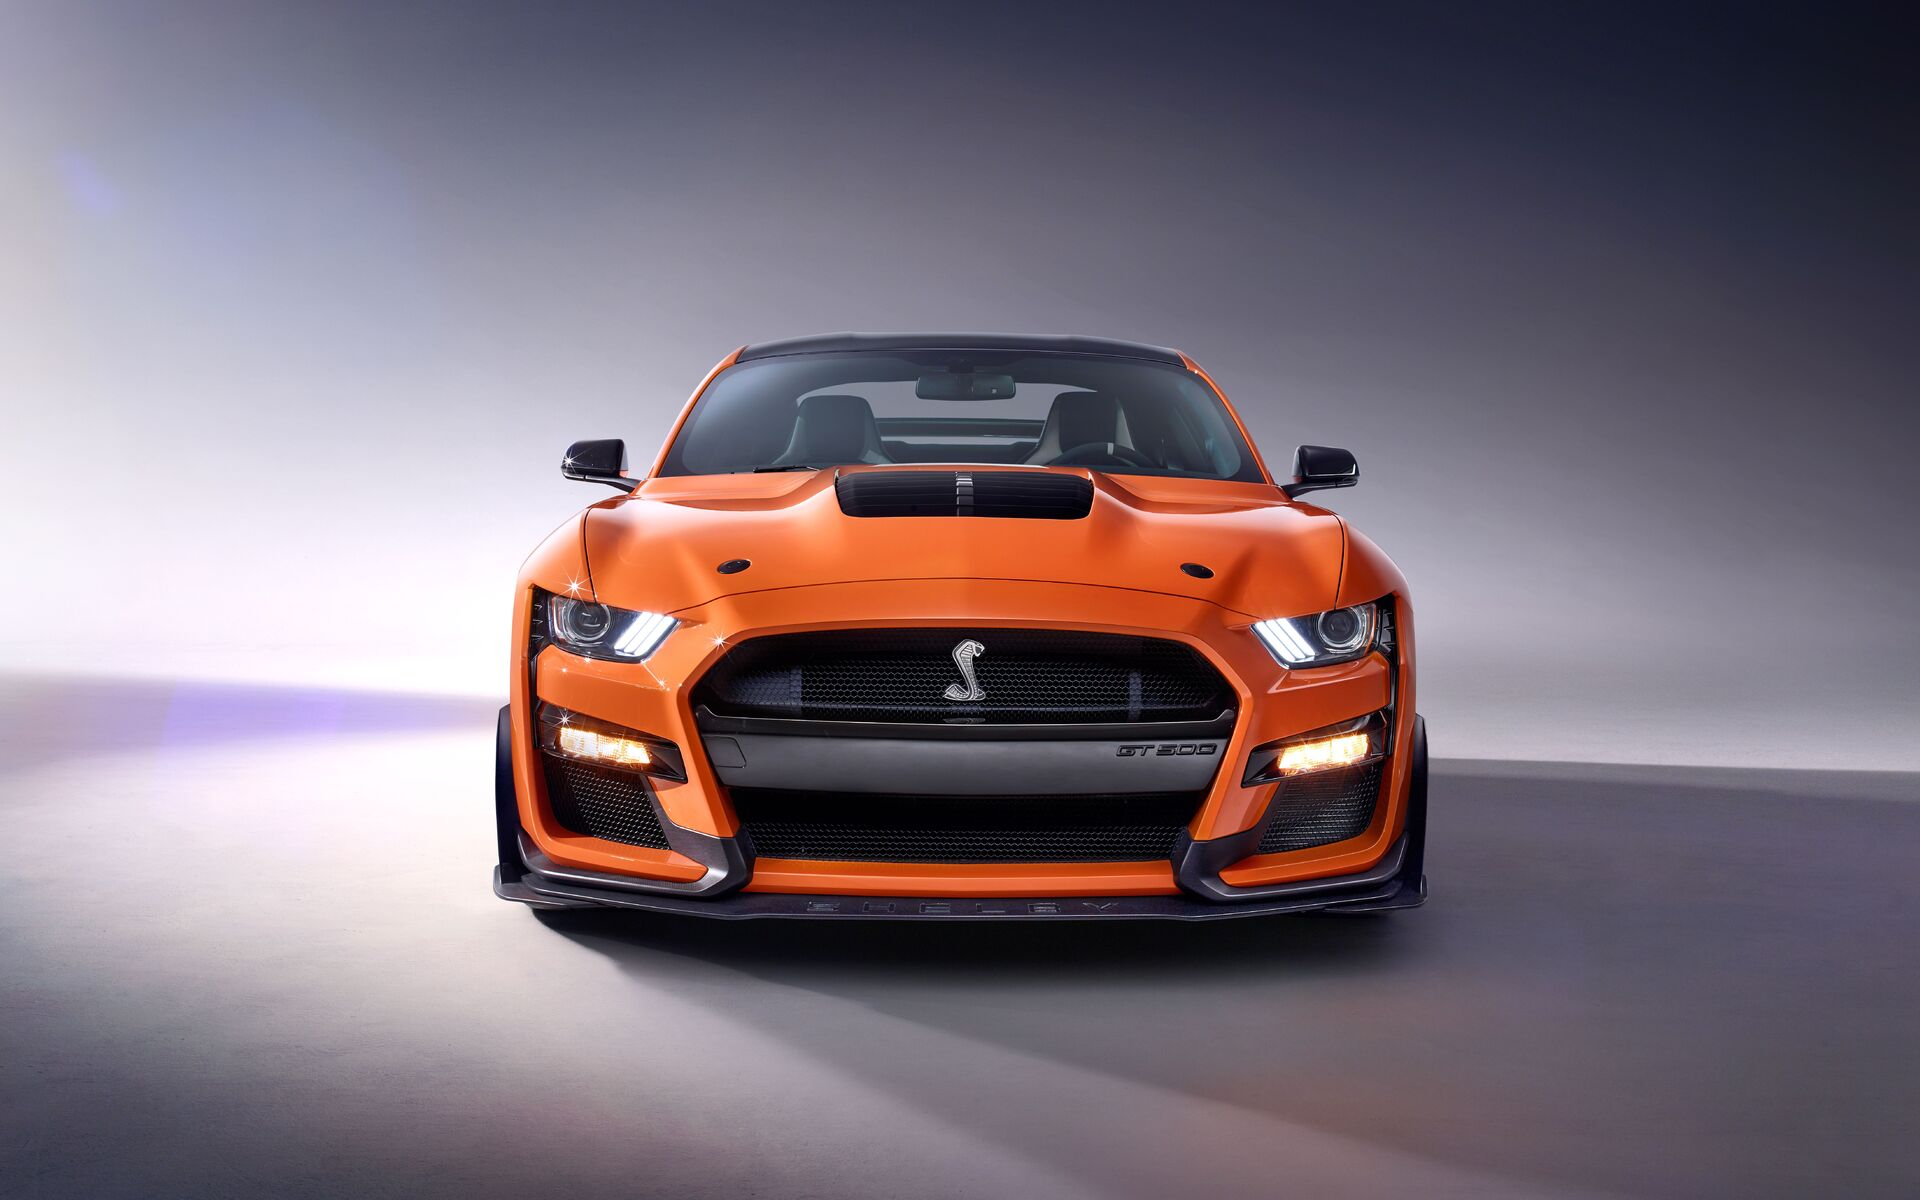 1920x1200 2020 Ford Mustang Shelby GT500 Front 5k 1080P ...